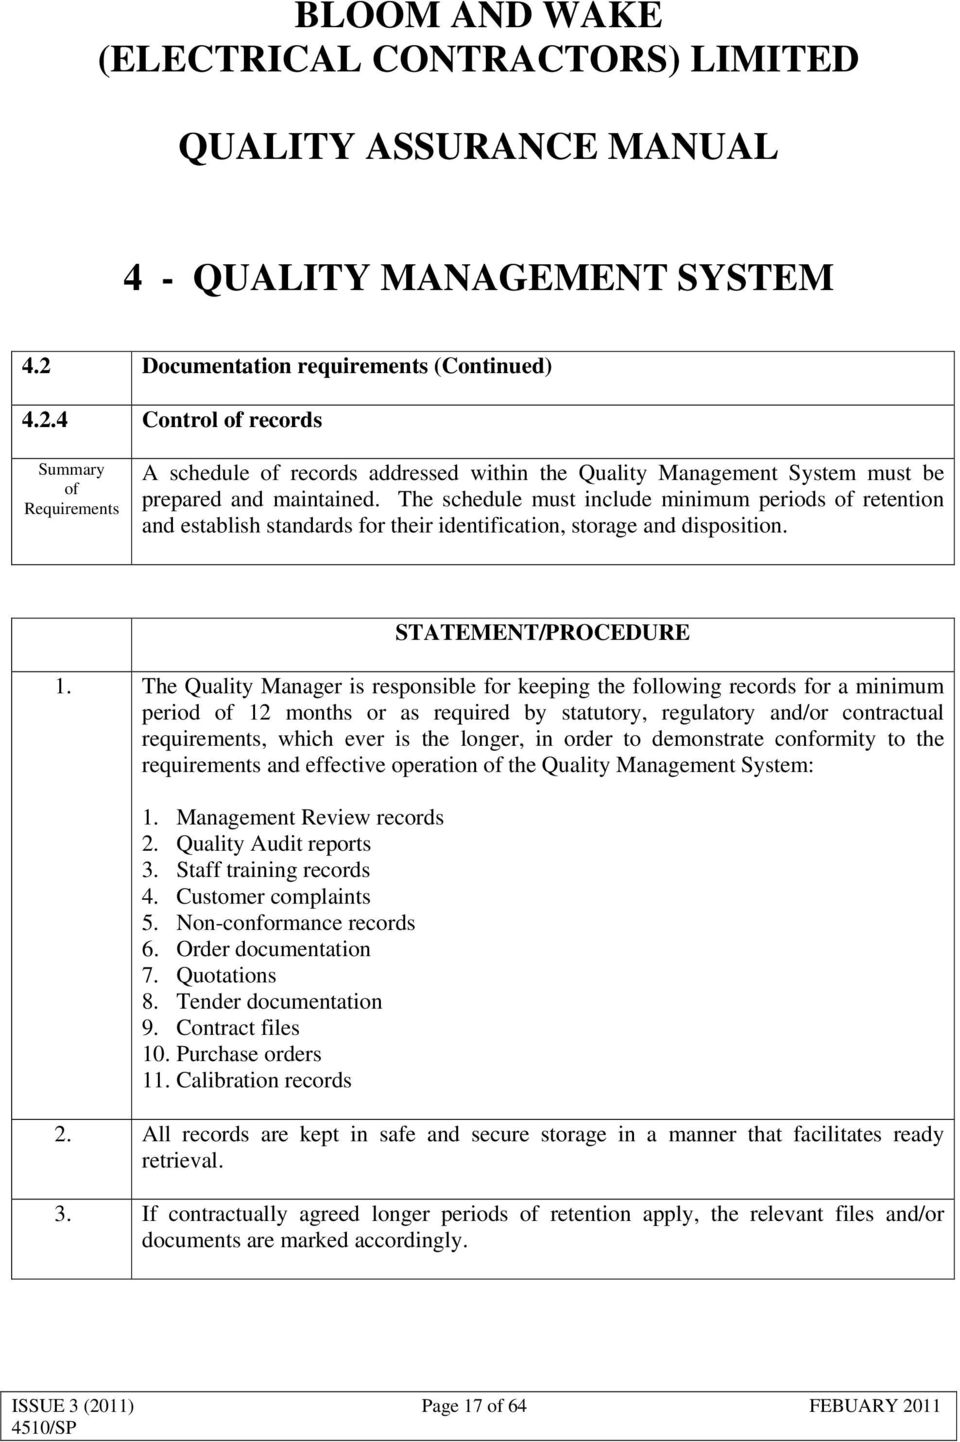 The Quality Manager is responsible for keeping the following records for a minimum period 12 months or as required by statutory, regulatory and/or contractual requirements, which ever is the longer,